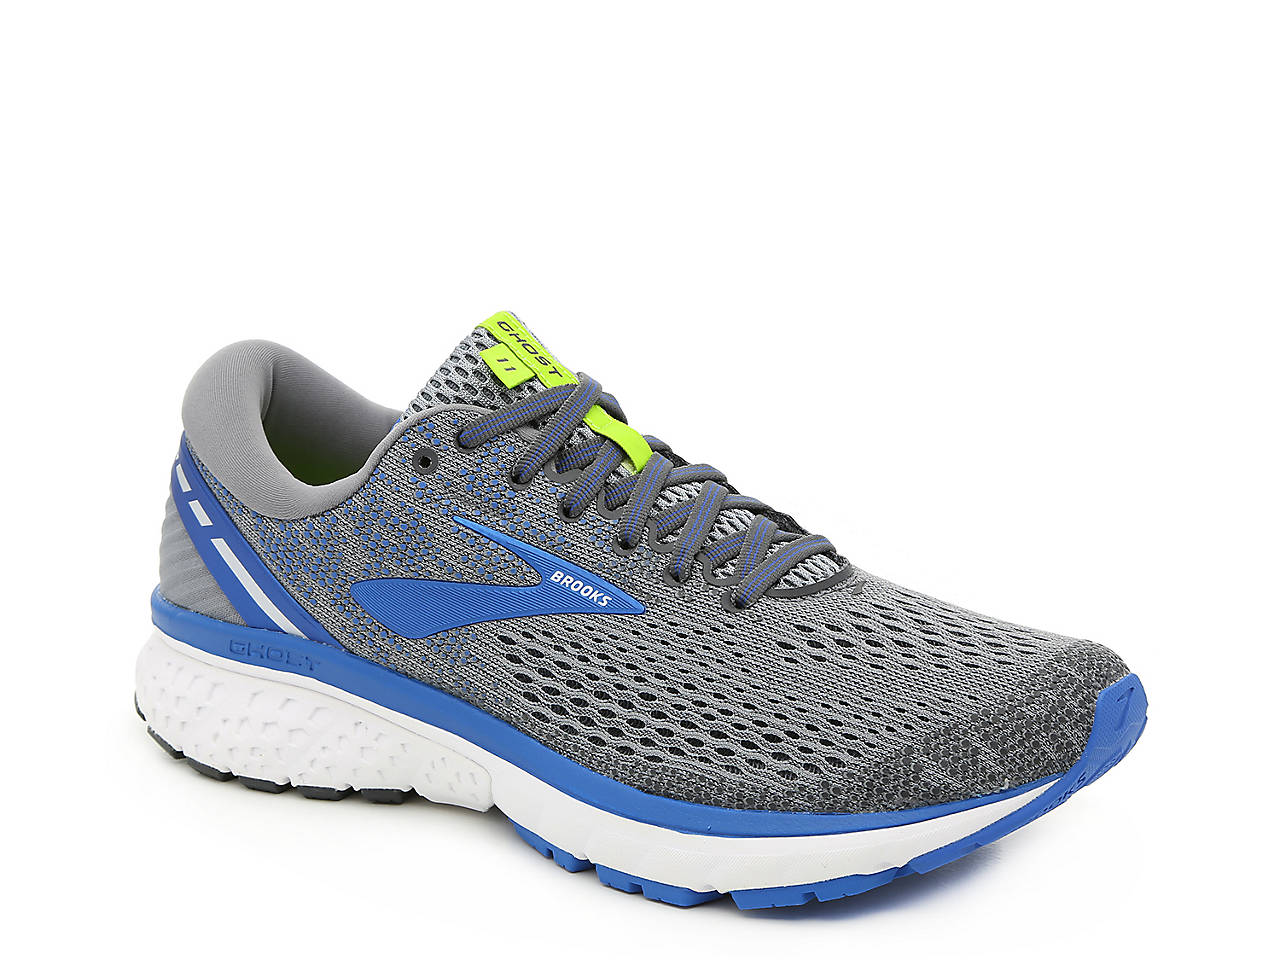 753cae556 Brooks Ghost 11 Running Shoe - Men's Men's Shoes | DSW